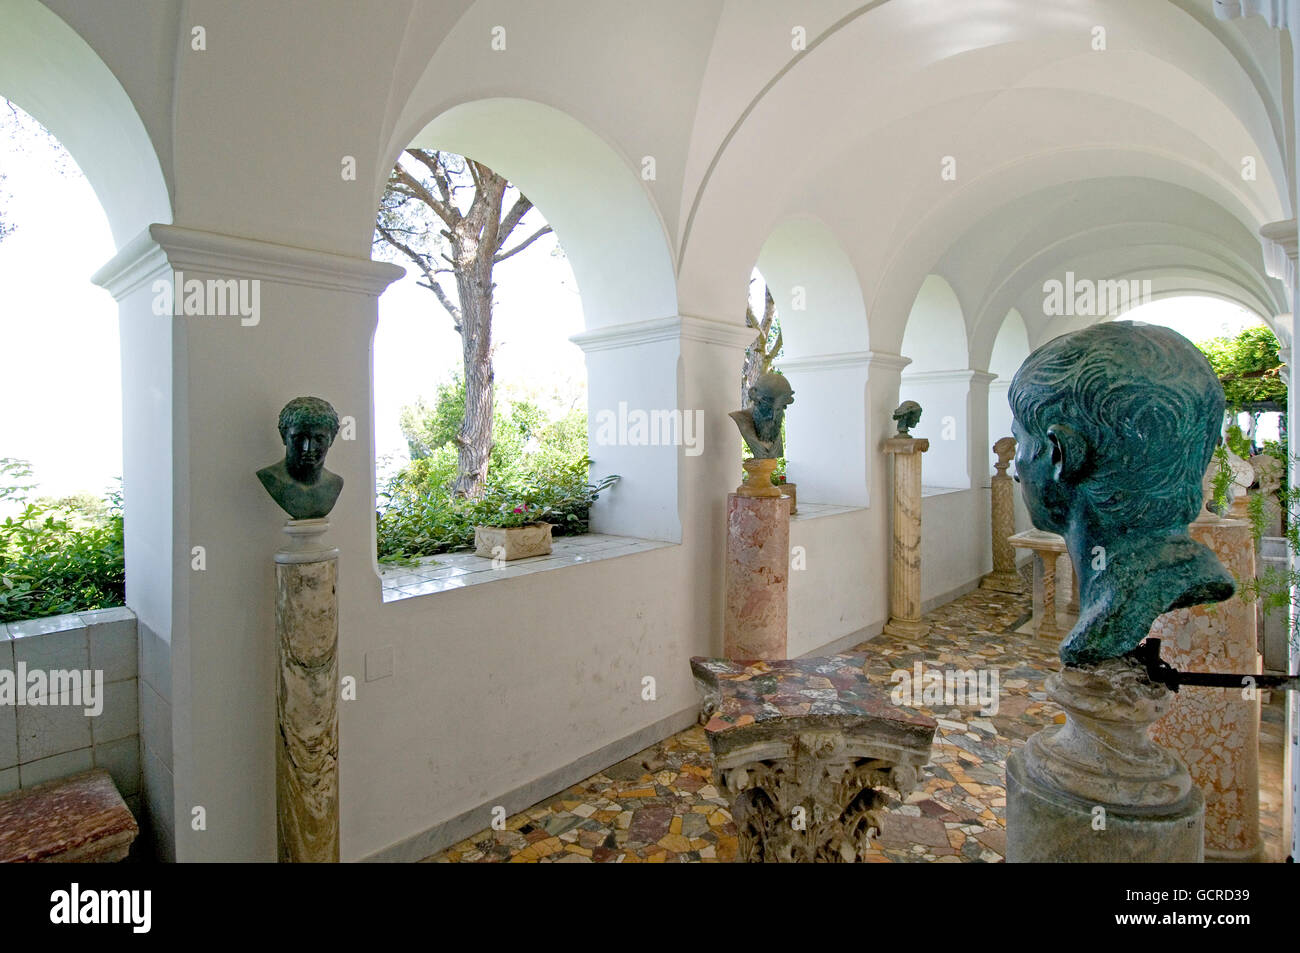 Sculpture gallery at the Villa San Michele, former home of author/physician Axel Munthe on the Isle of Capri in - Stock Image